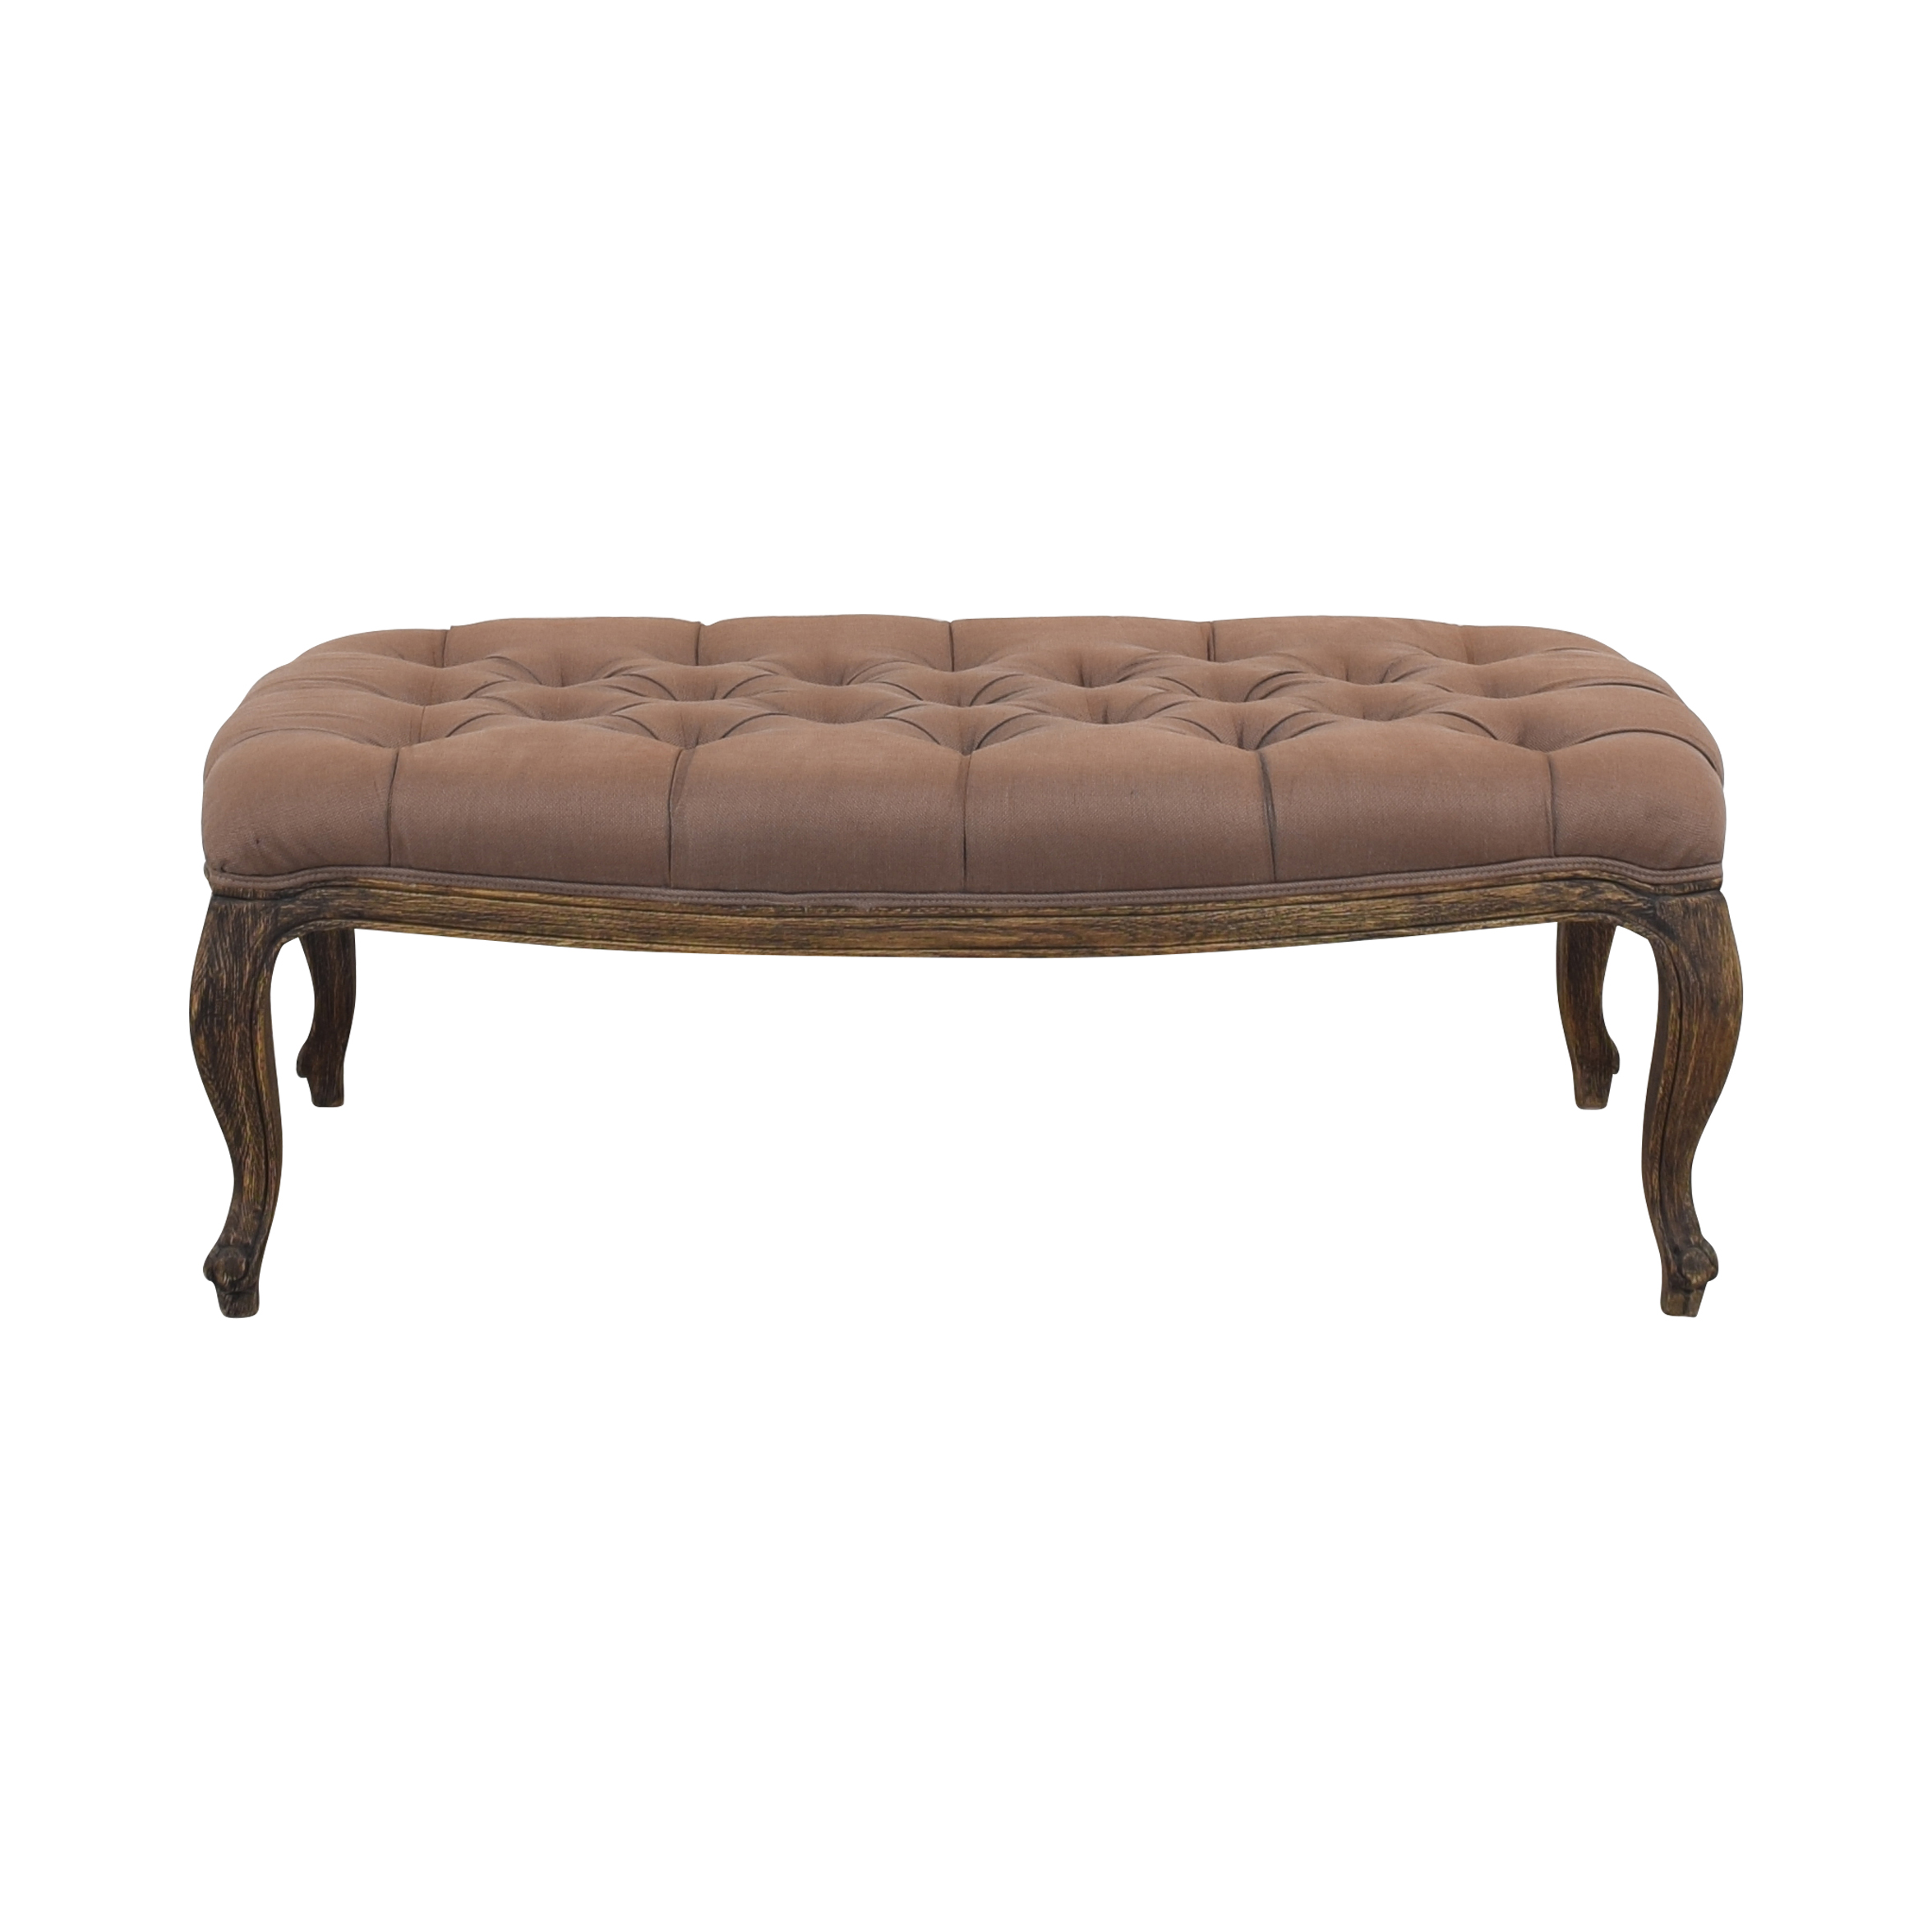 Wayfair Wayfair Bella Collection Ottoman discount